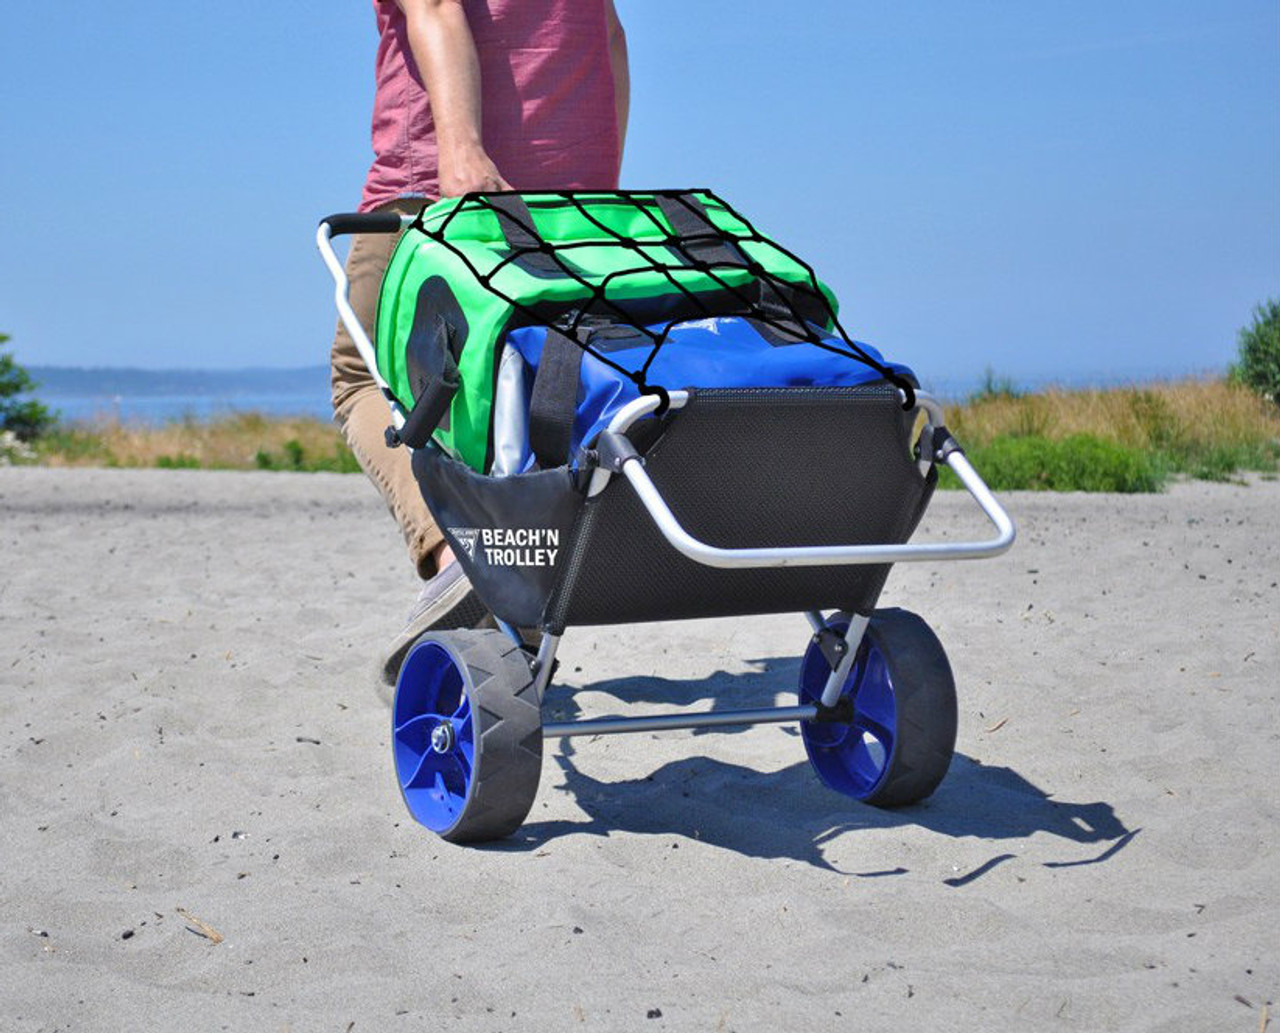 Beach Trolley And Chair Flat Wheel Storeyourboard Com